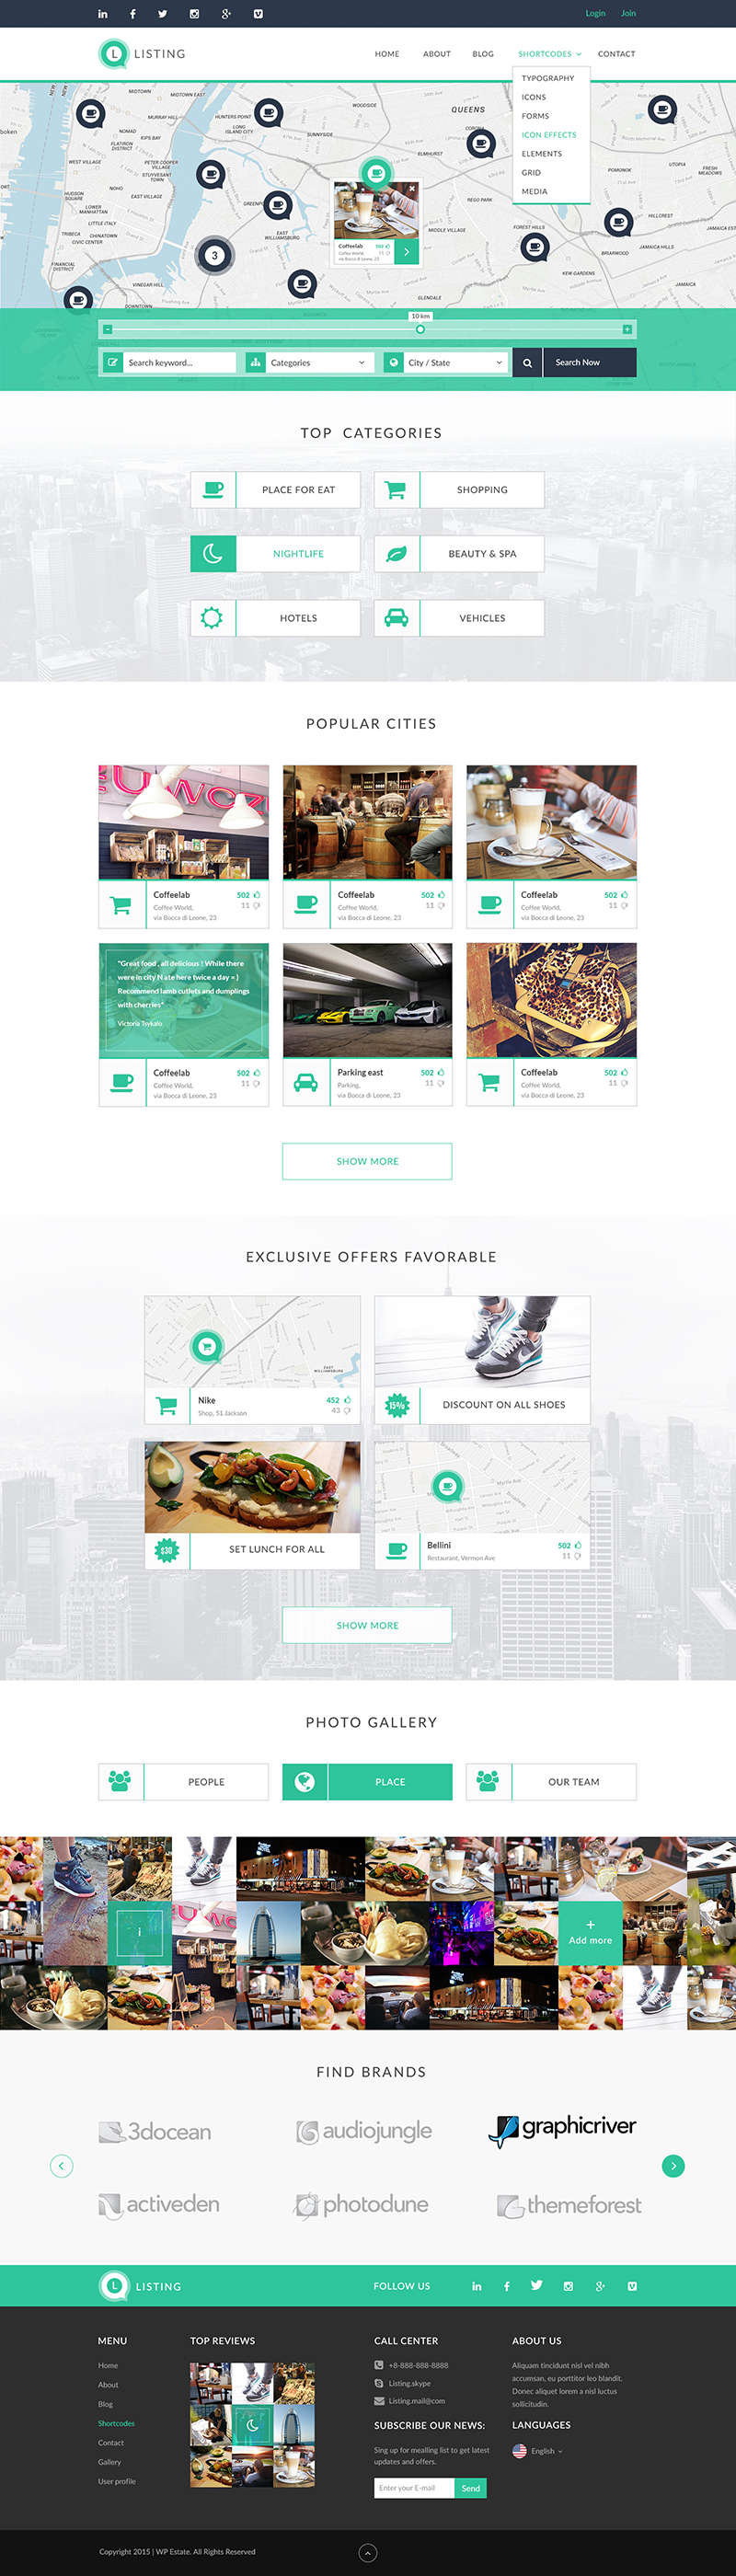 Online Directory & Listing Website PSD Template